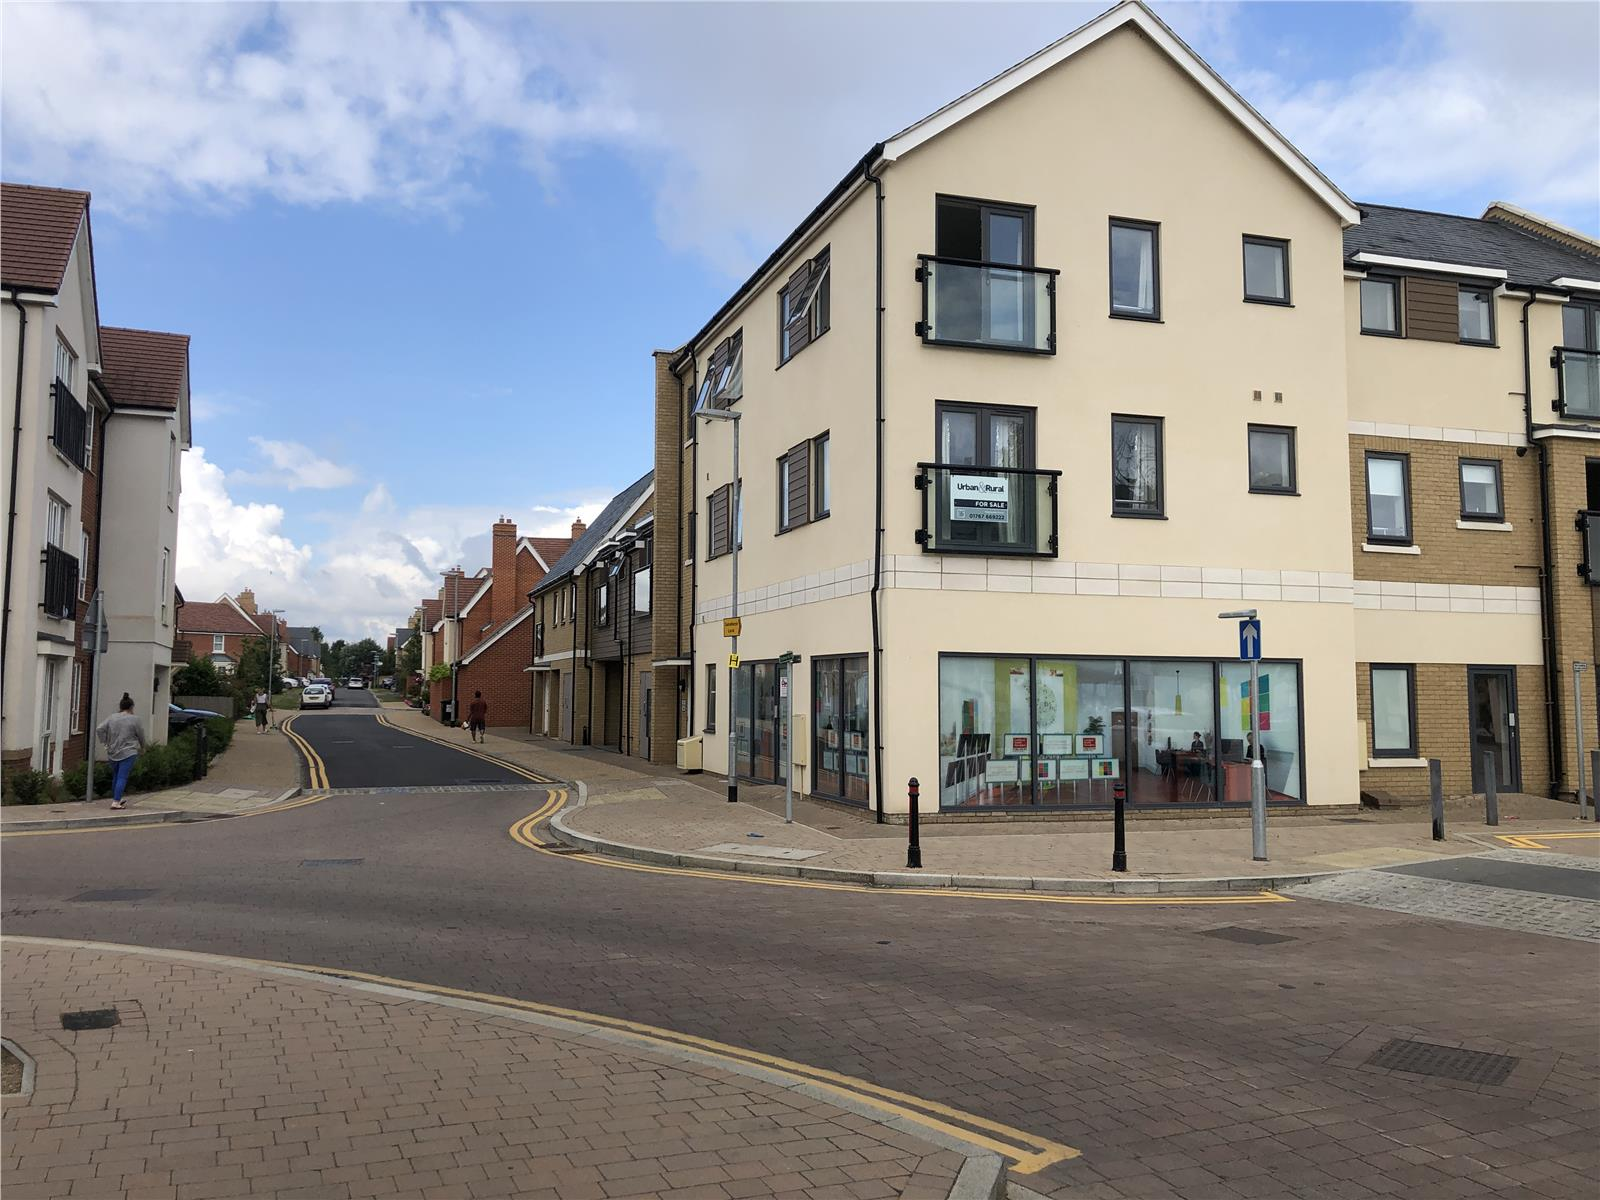 367 Central Square (offices), Kings Reach, Biggleswade, Bedfordshire, SG18